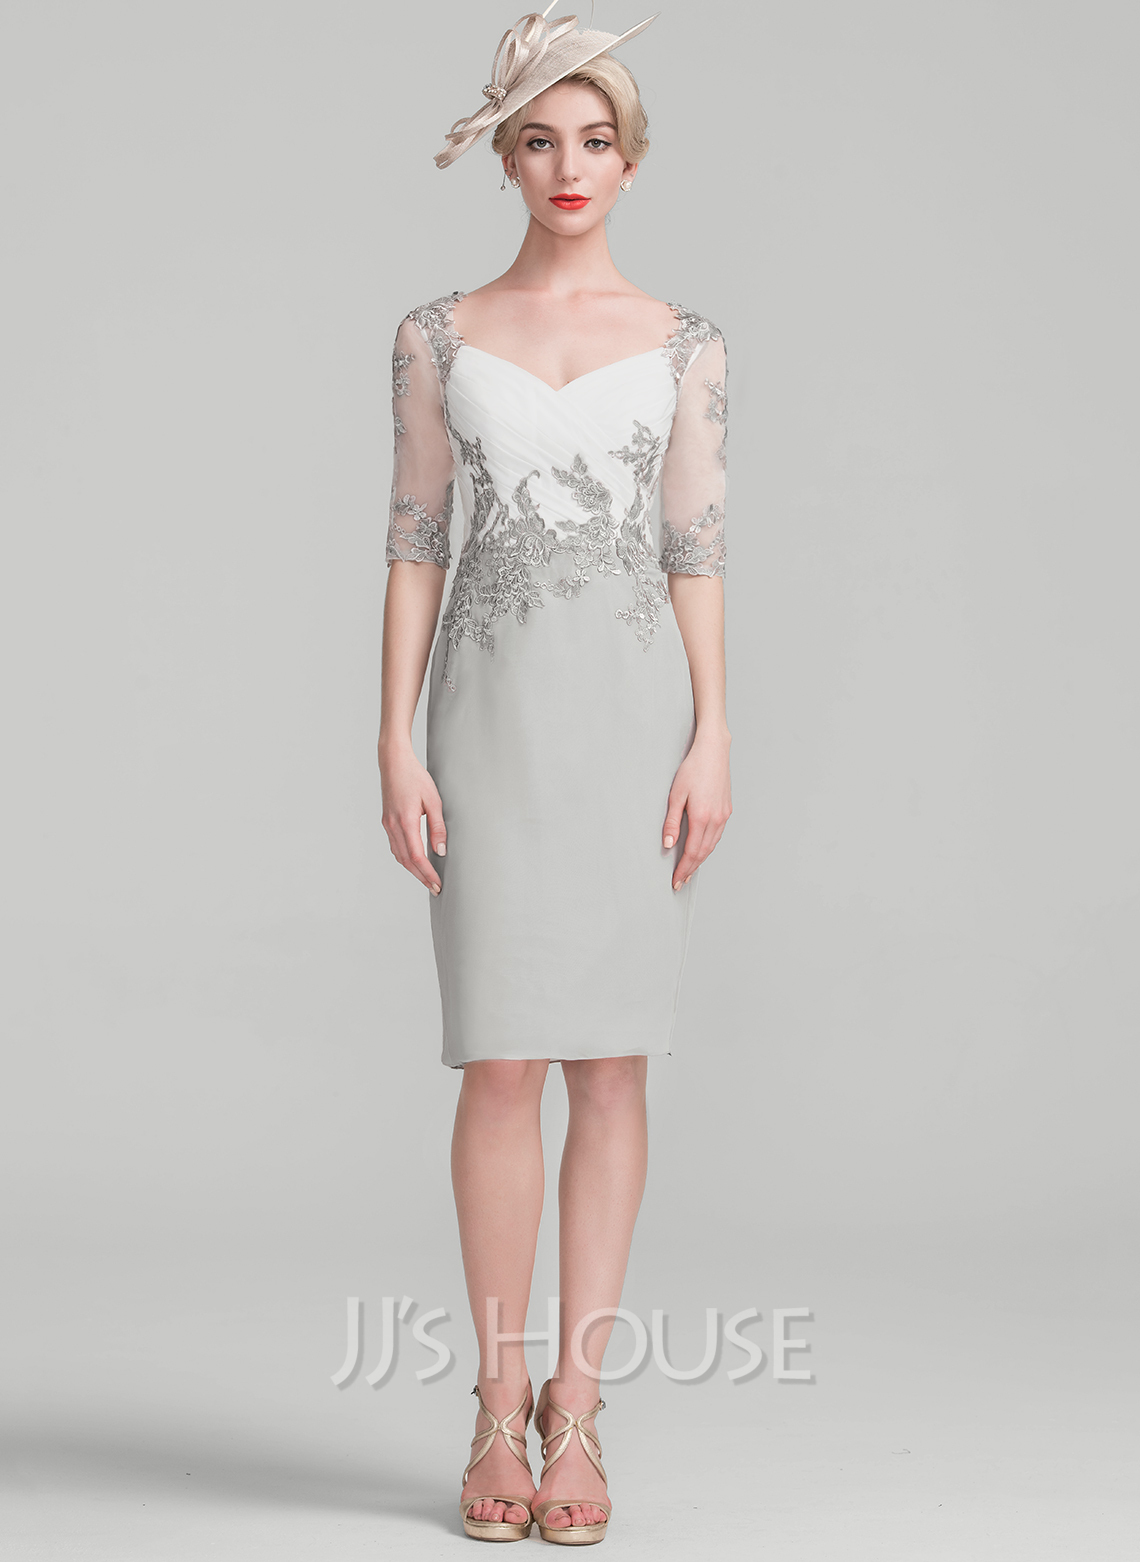 Sheath/Column Knee-Length Chiffon Lace Cocktail Dress